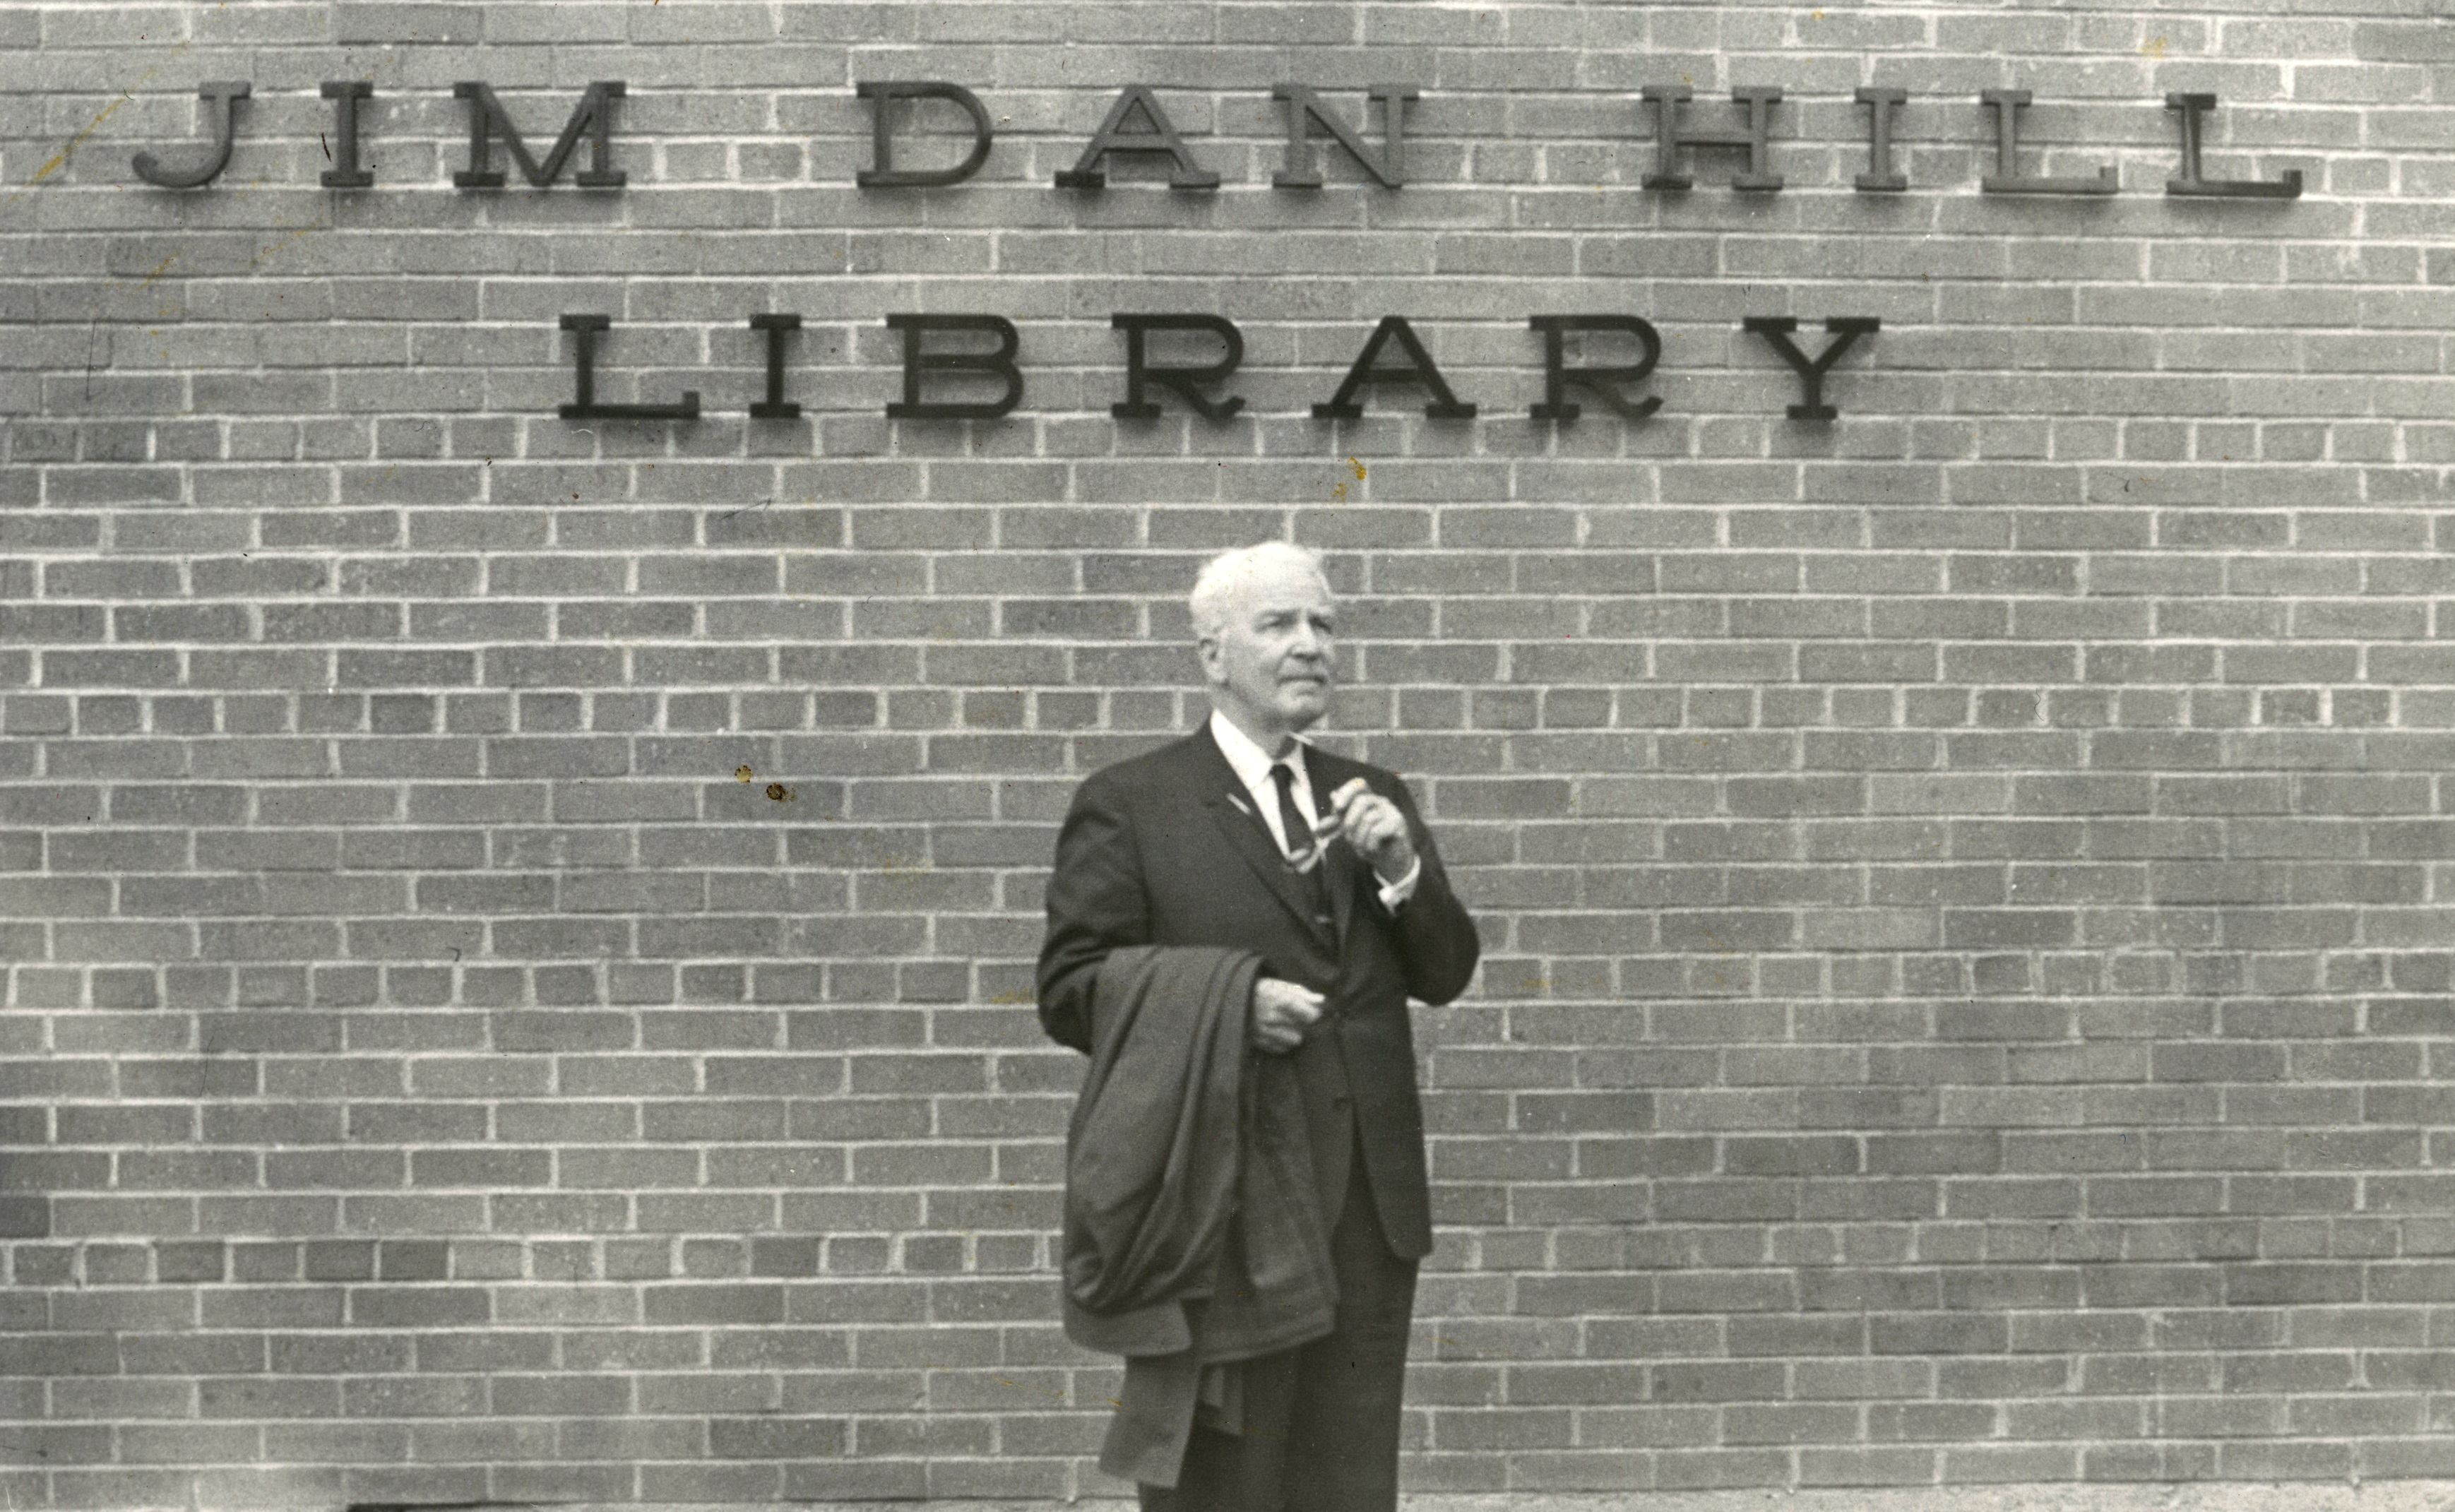 Jim Dan Hill in front of the library.